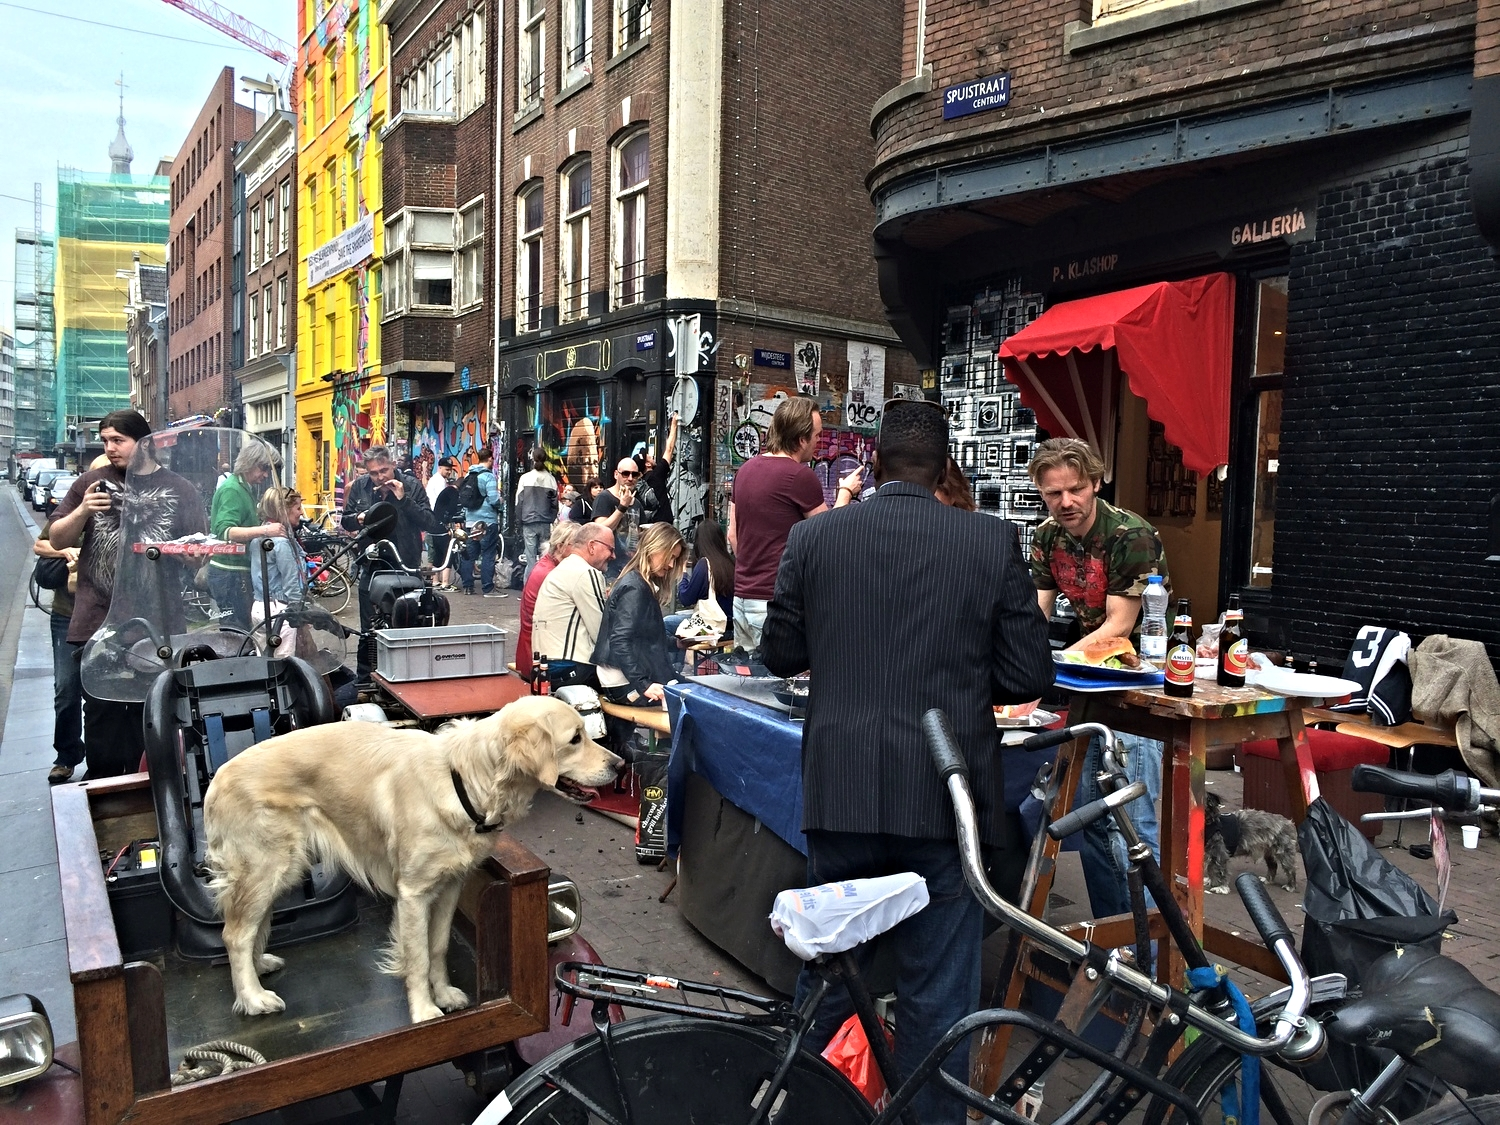 A pop-up BBQ on Spuistraat - a great neighbourhood for street art, cafes and quirky shops.